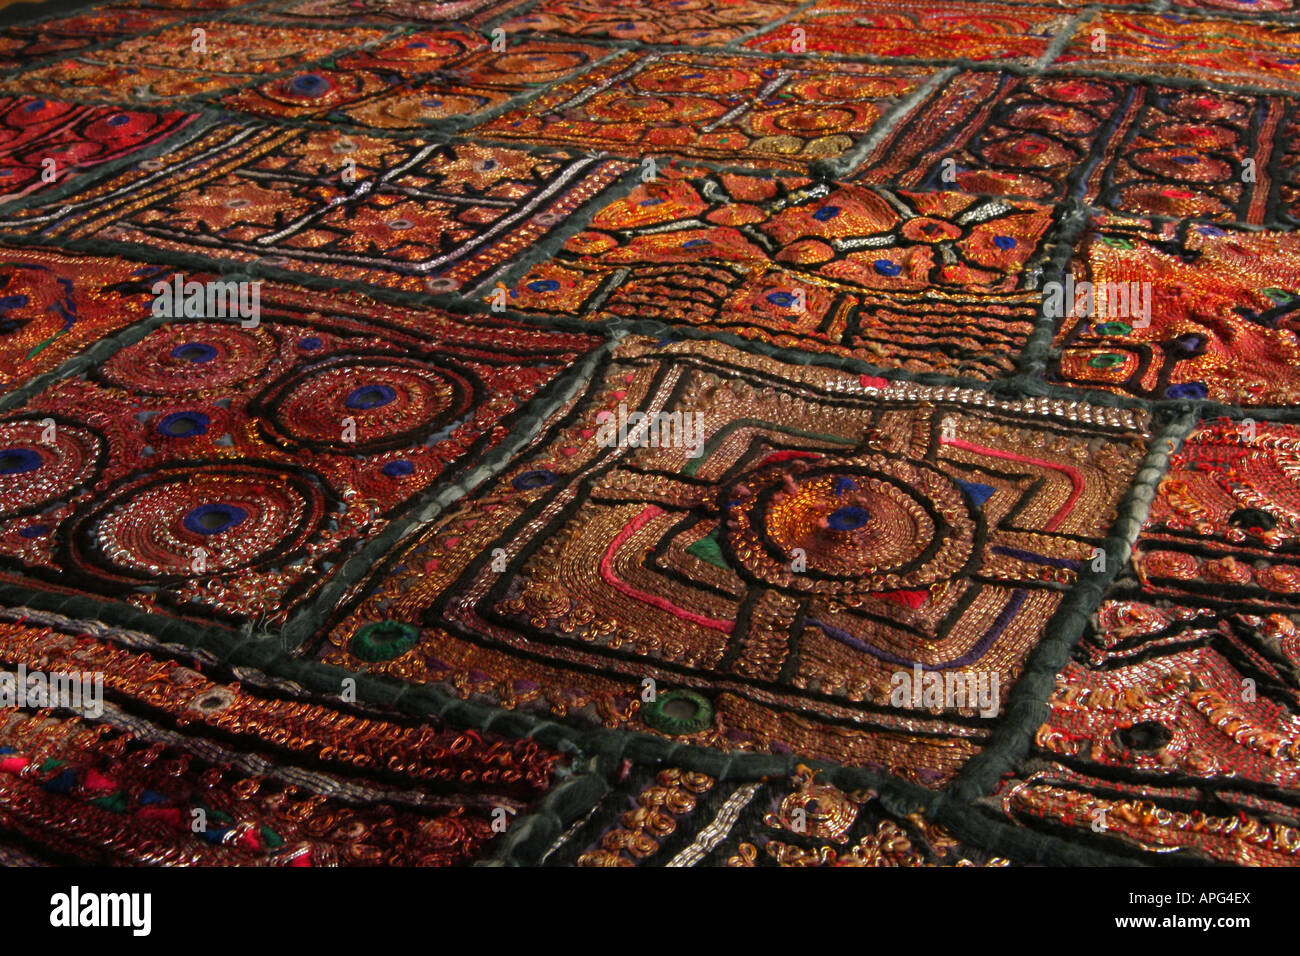 Indian Tapestry - Stock Image